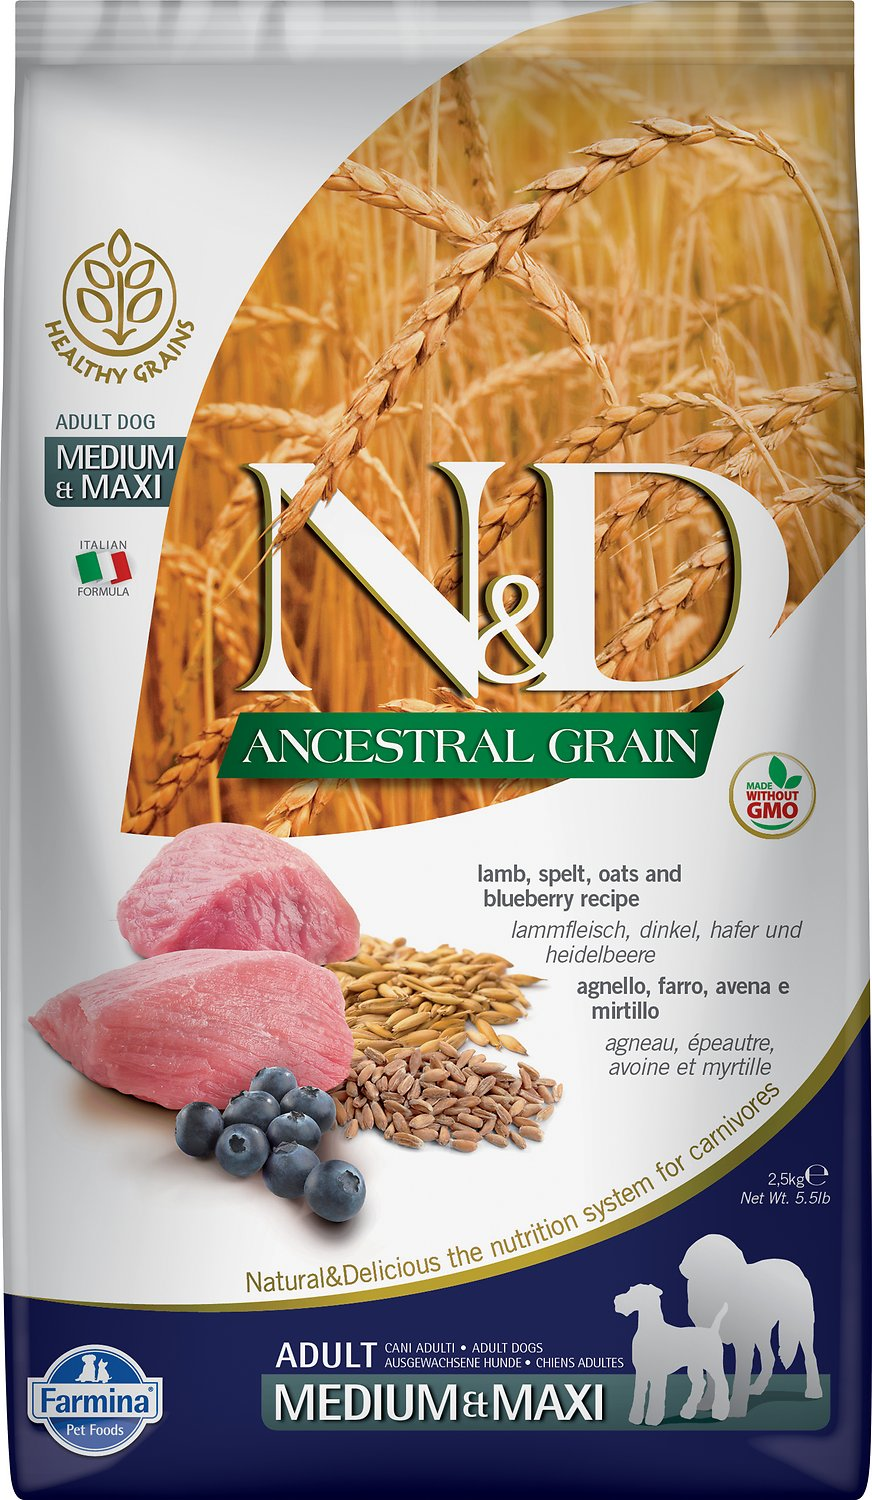 Farmina N&D Ancestral Grain Lamb & Blueberry Medium & Maxi Adult Dry Dog Food Image